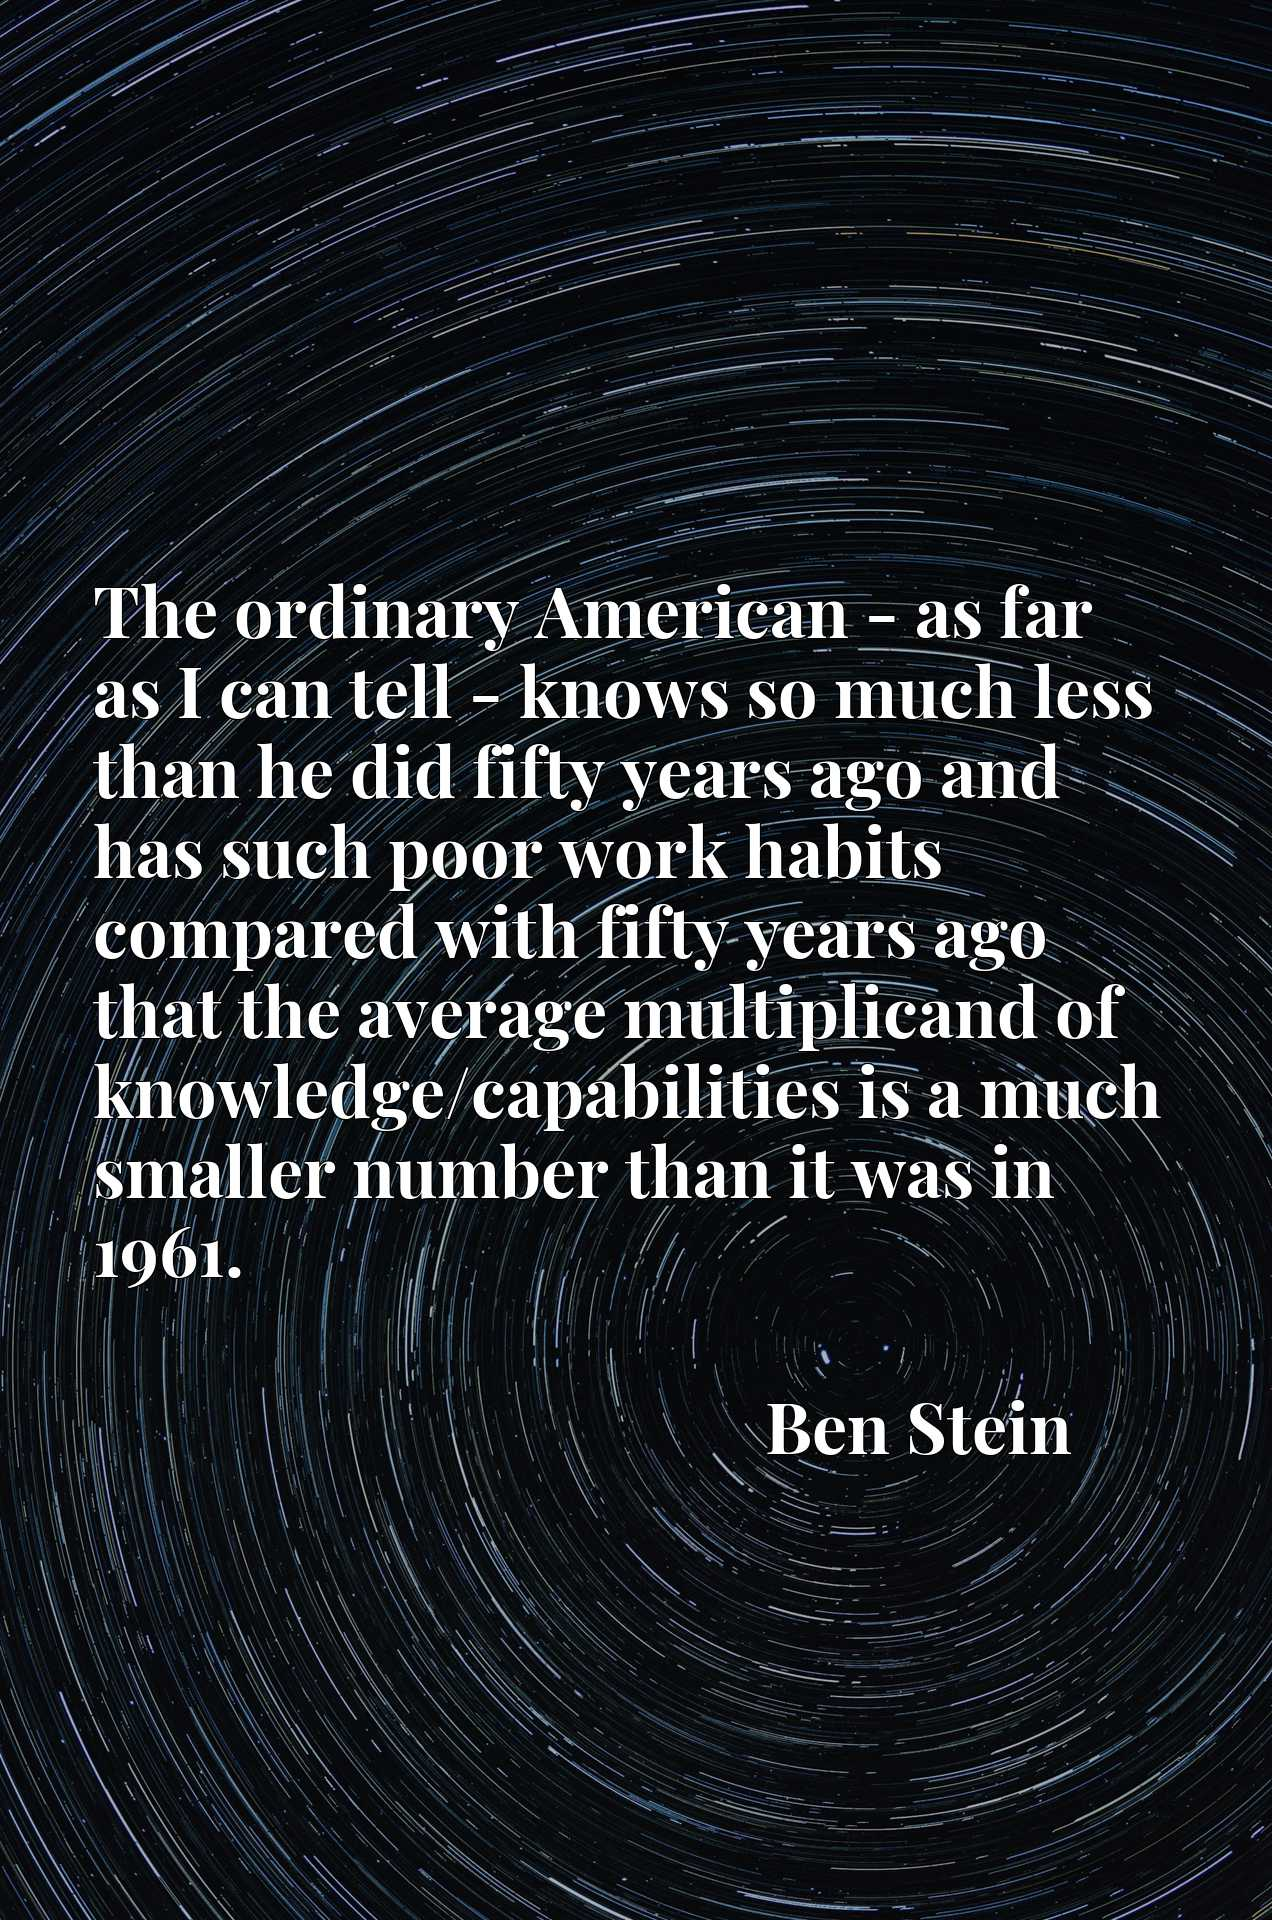 The ordinary American - as far as I can tell - knows so much less than he did fifty years ago and has such poor work habits compared with fifty years ago that the average multiplicand of knowledge/capabilities is a much smaller number than it was in 1961.